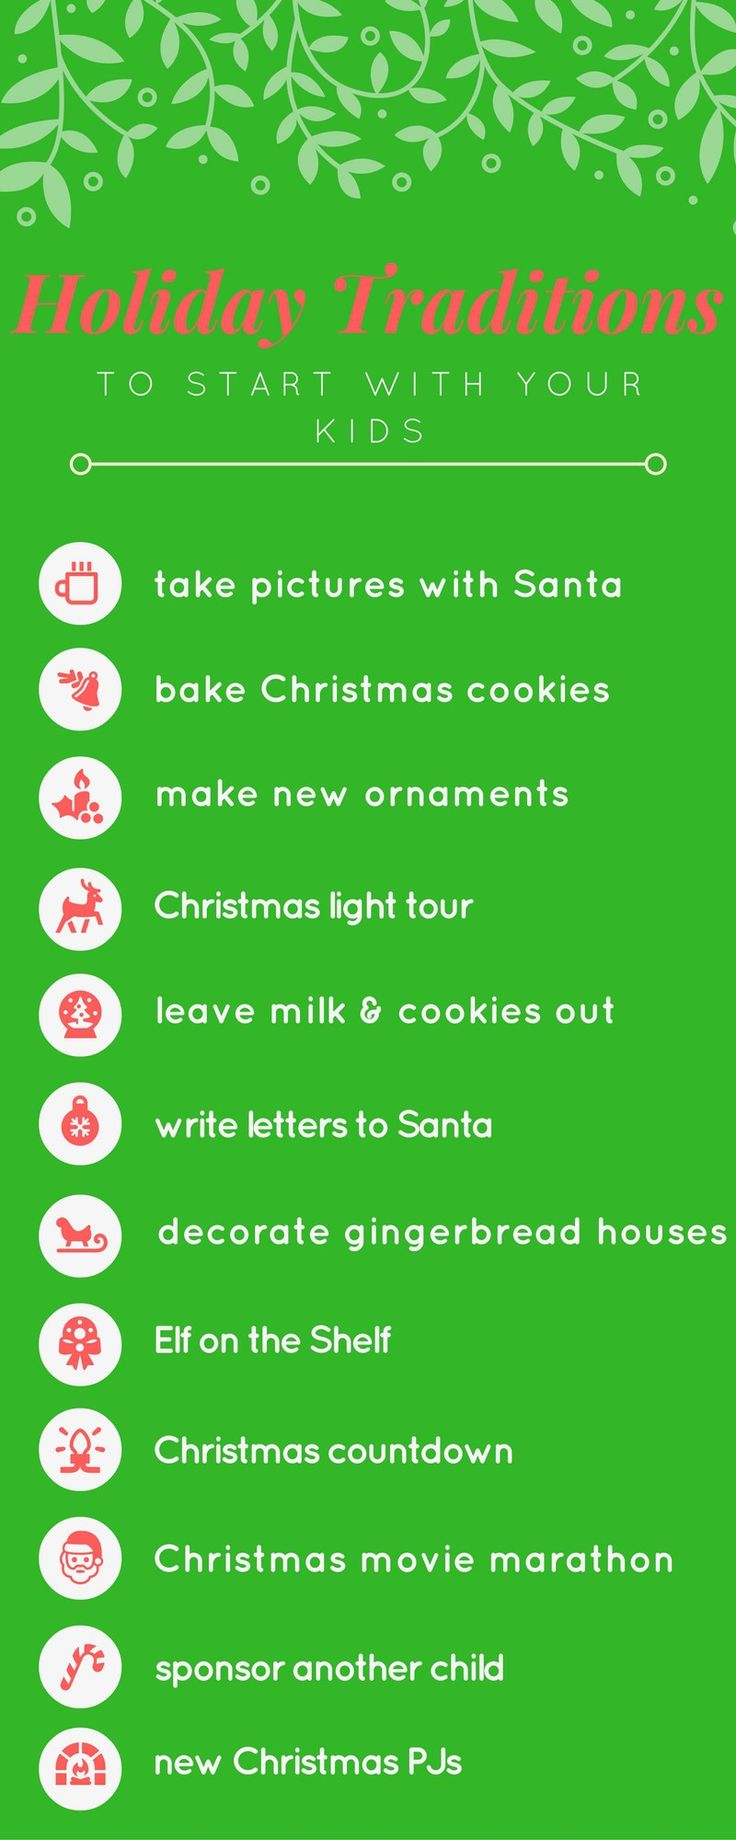 Best 25+ Christmas stuff ideas on Pinterest | Simple christmas ...